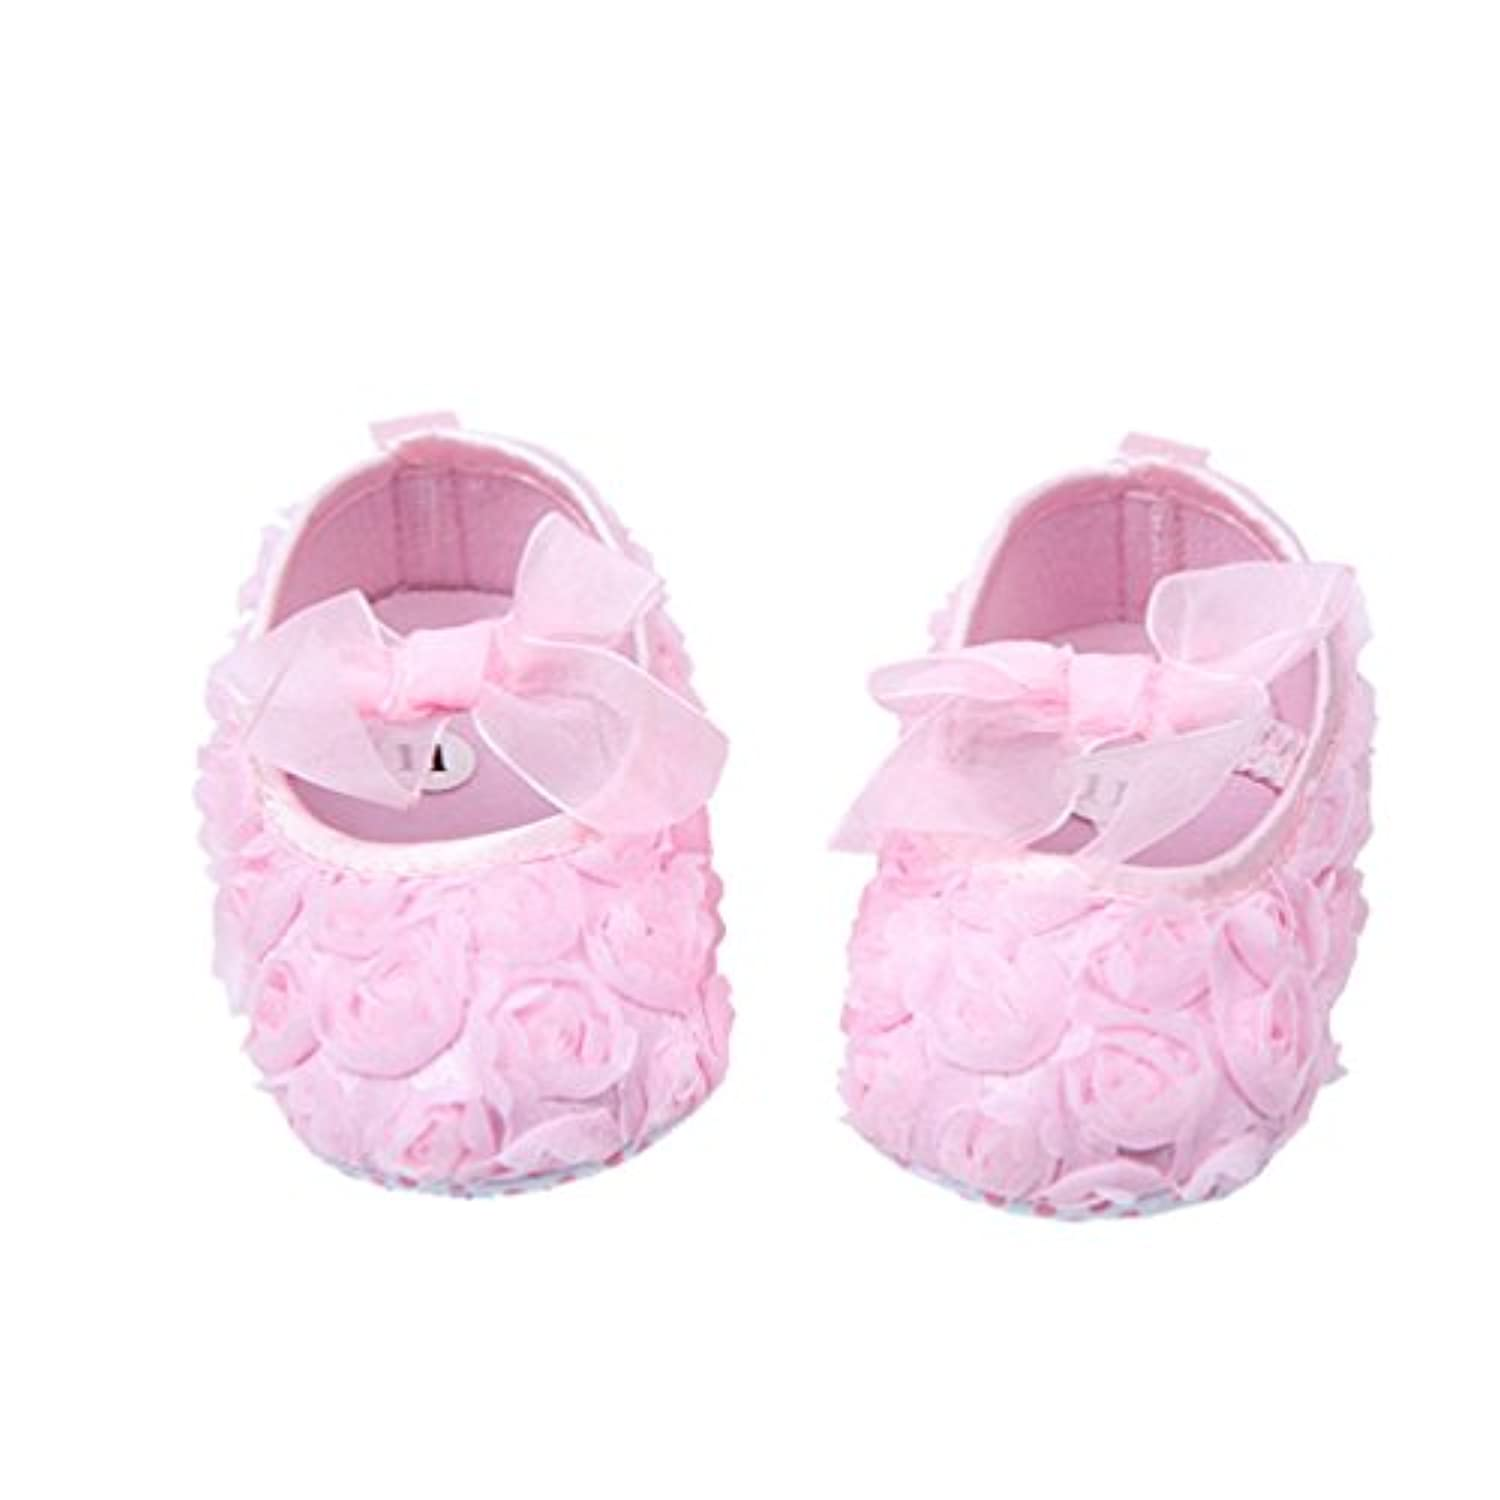 Zerowin Baby Toddler Warm Autumn Soft Crib Shoes, Rose Flower Pattern (6-12 Months) by Zerowin